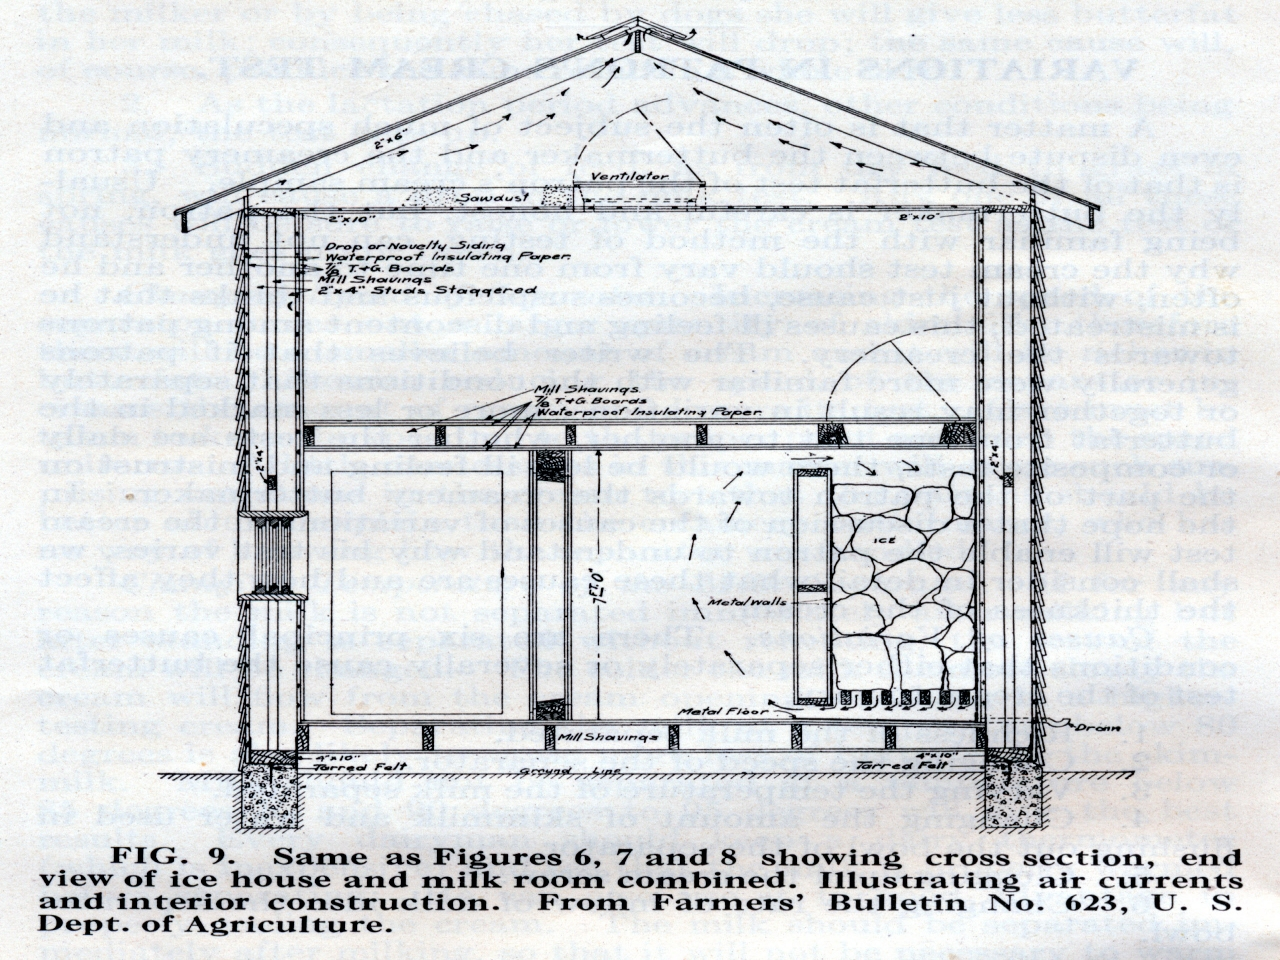 Ice House Floor Plans Permanent on permanent ice house on skid, water house plans, pet duck house plans, permanent ice house schematics, permanent ice house frame angle iron, snow house plans,